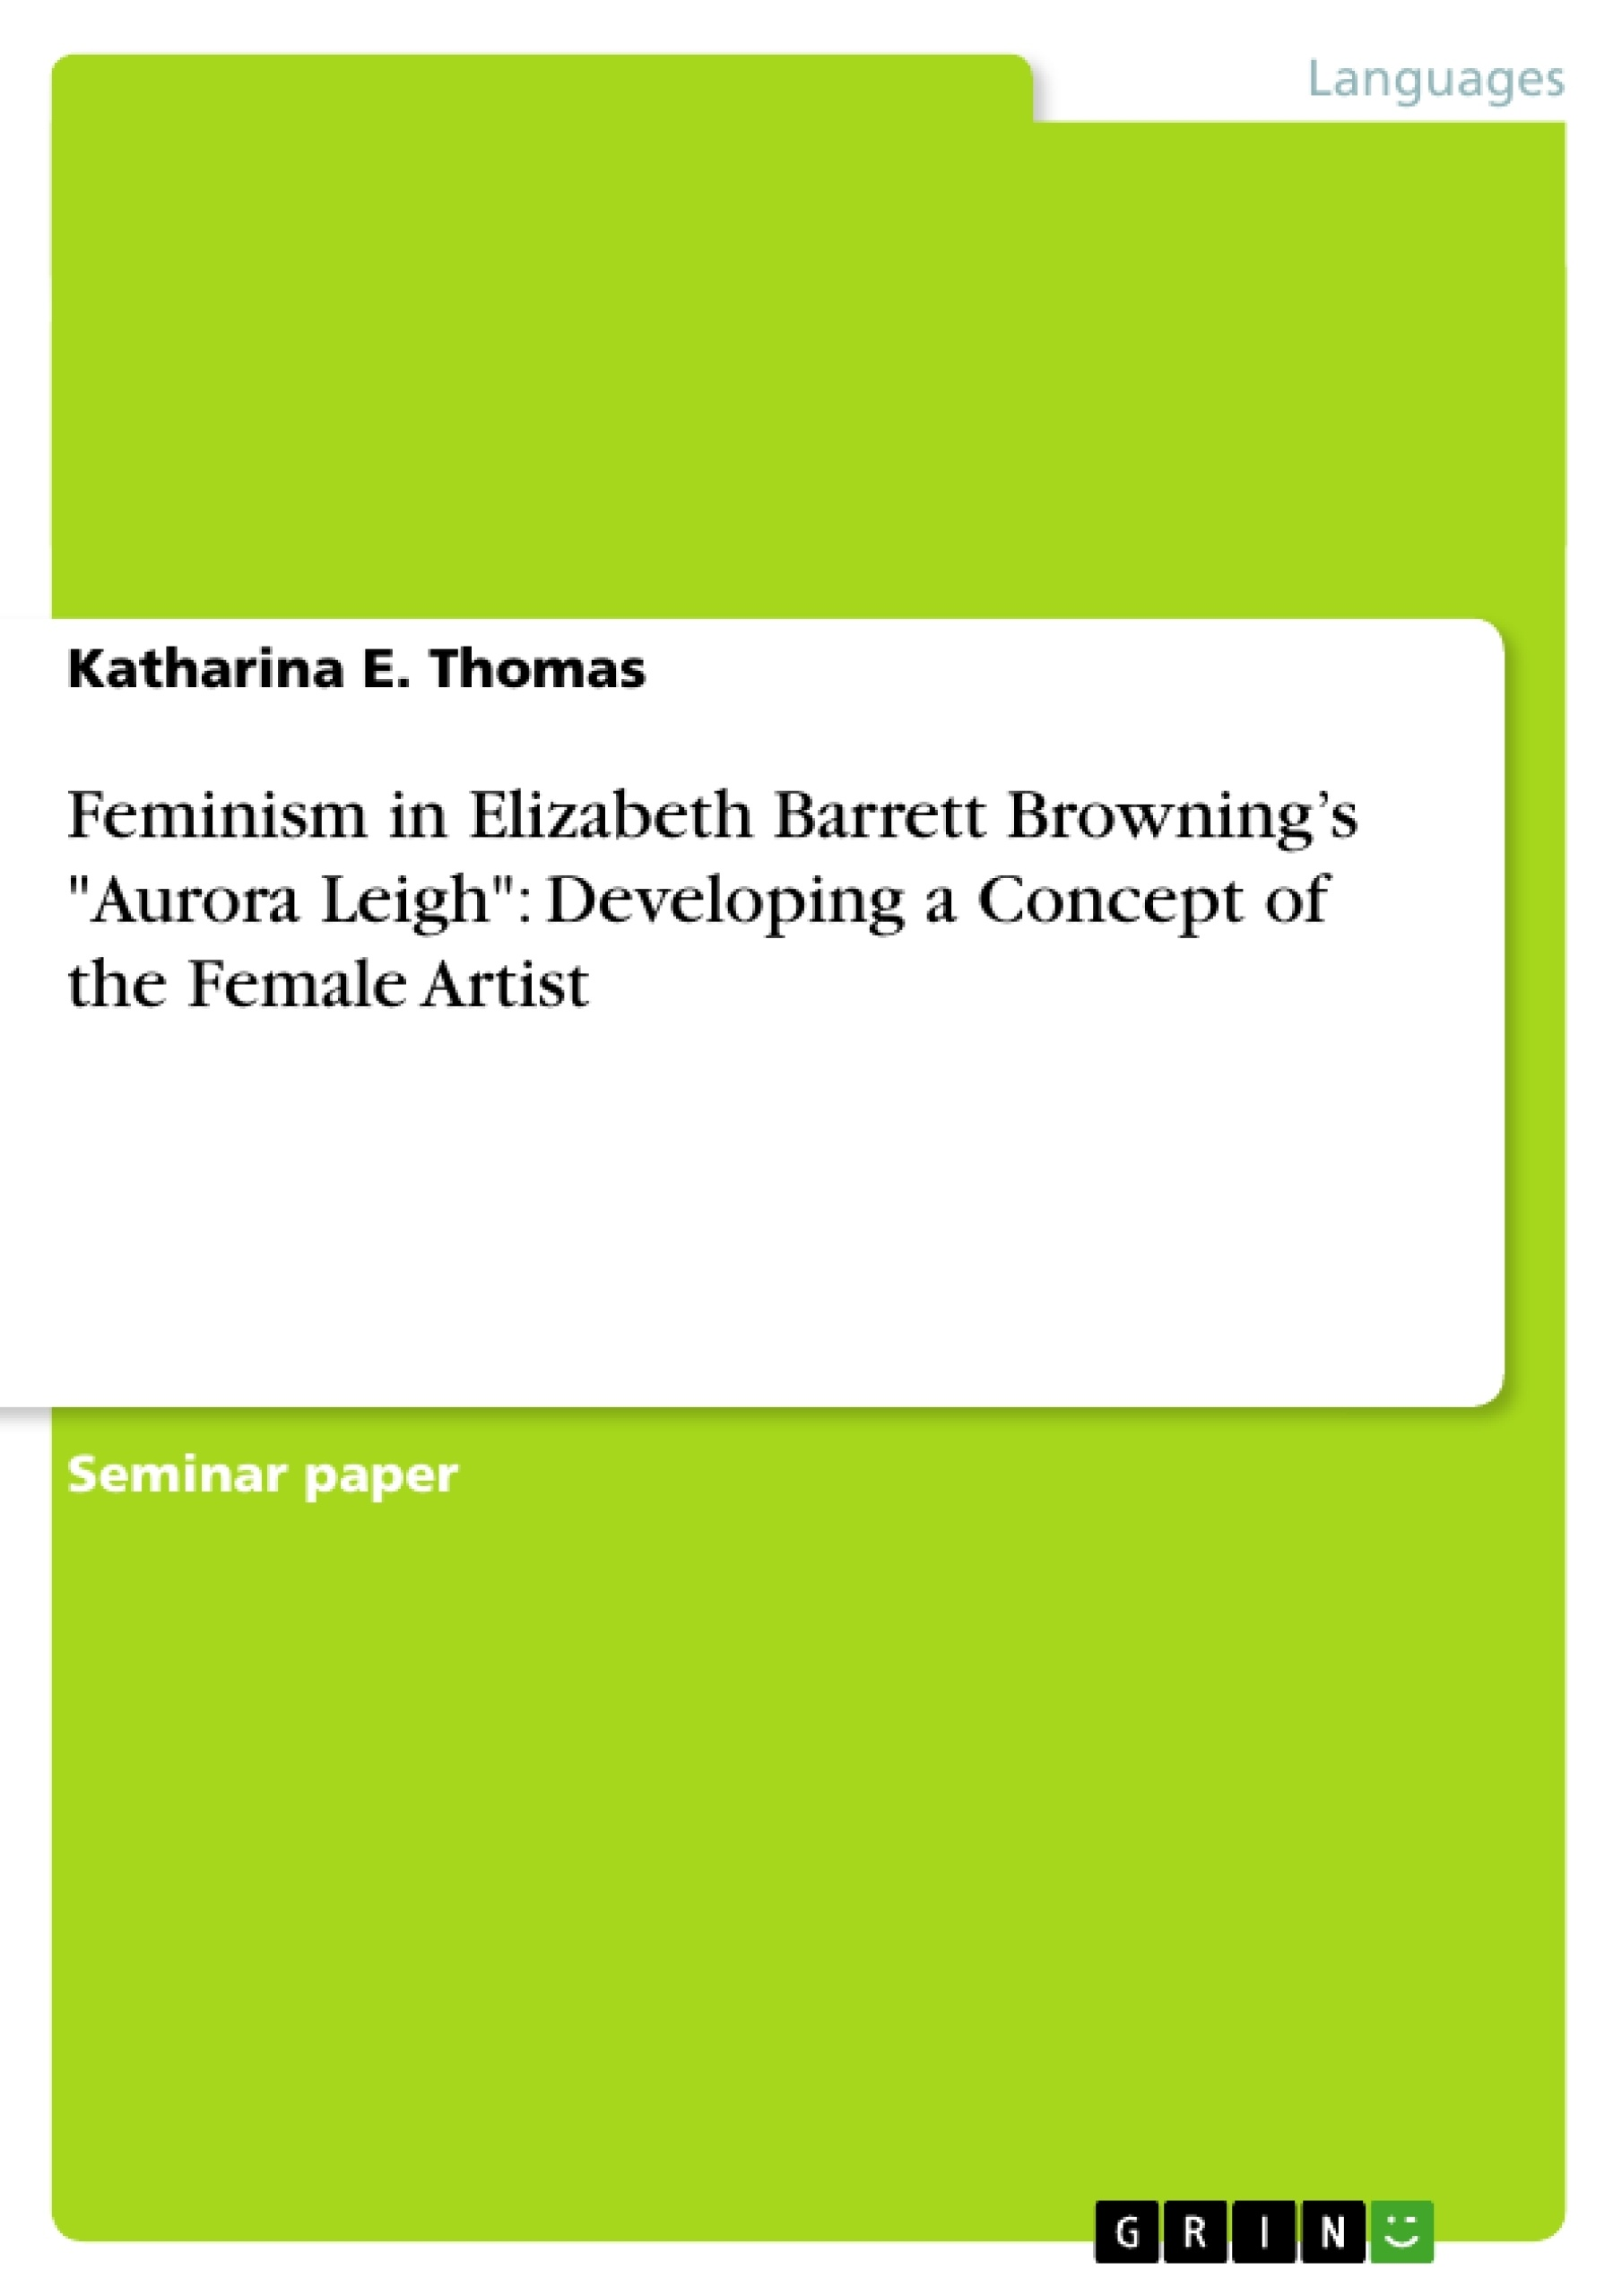 feminism in elizabeth barrett browning s aurora leigh feminism in elizabeth barrett browning s aurora leigh publish your master s thesis bachelor s thesis essay or term paper